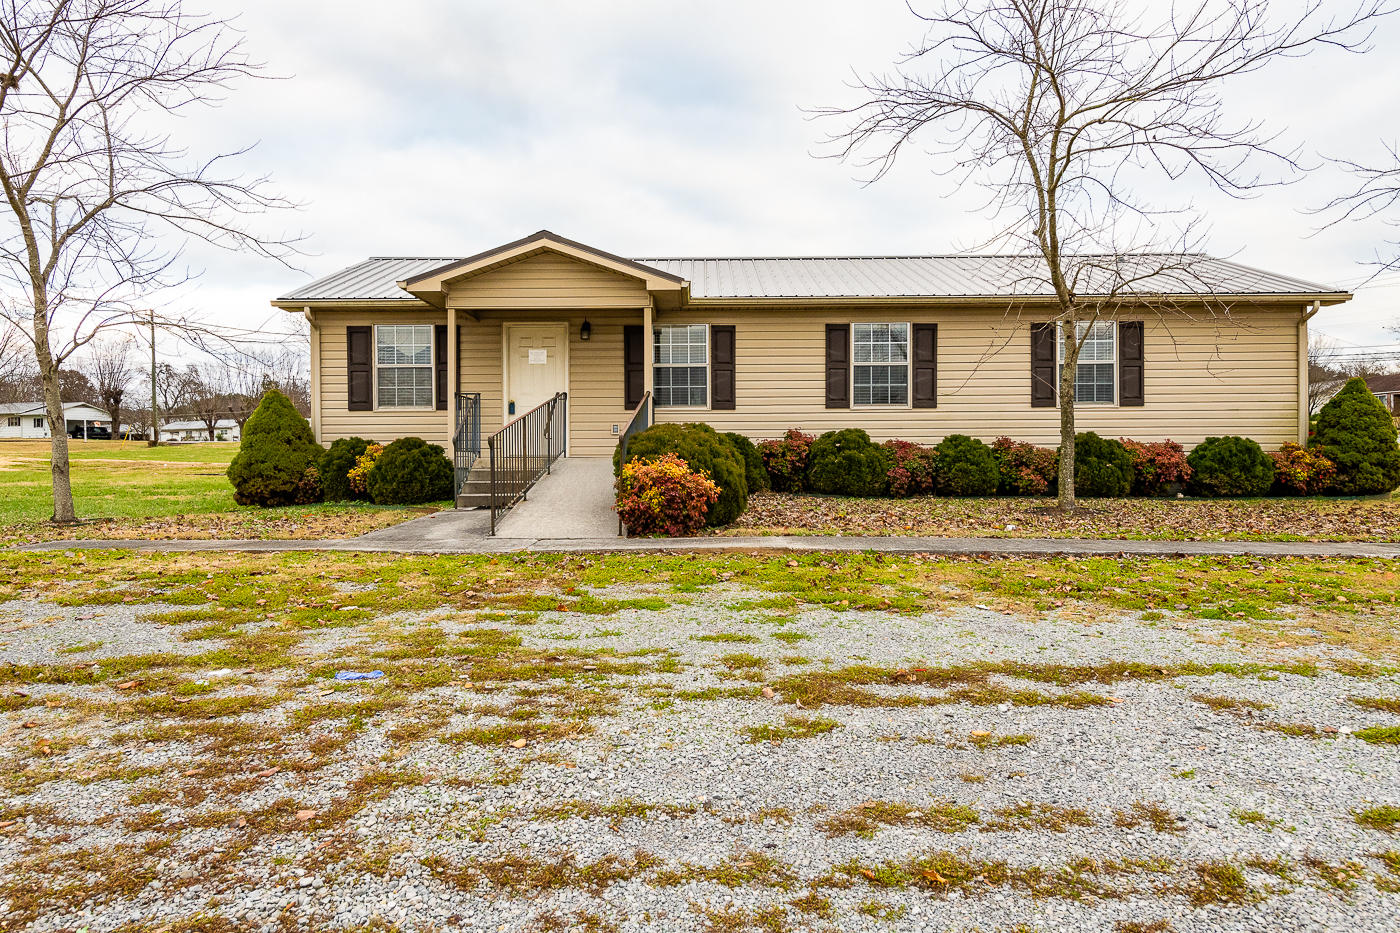 607 Sweetwater Vonore Rd Rd, Sweetwater, TN 37874